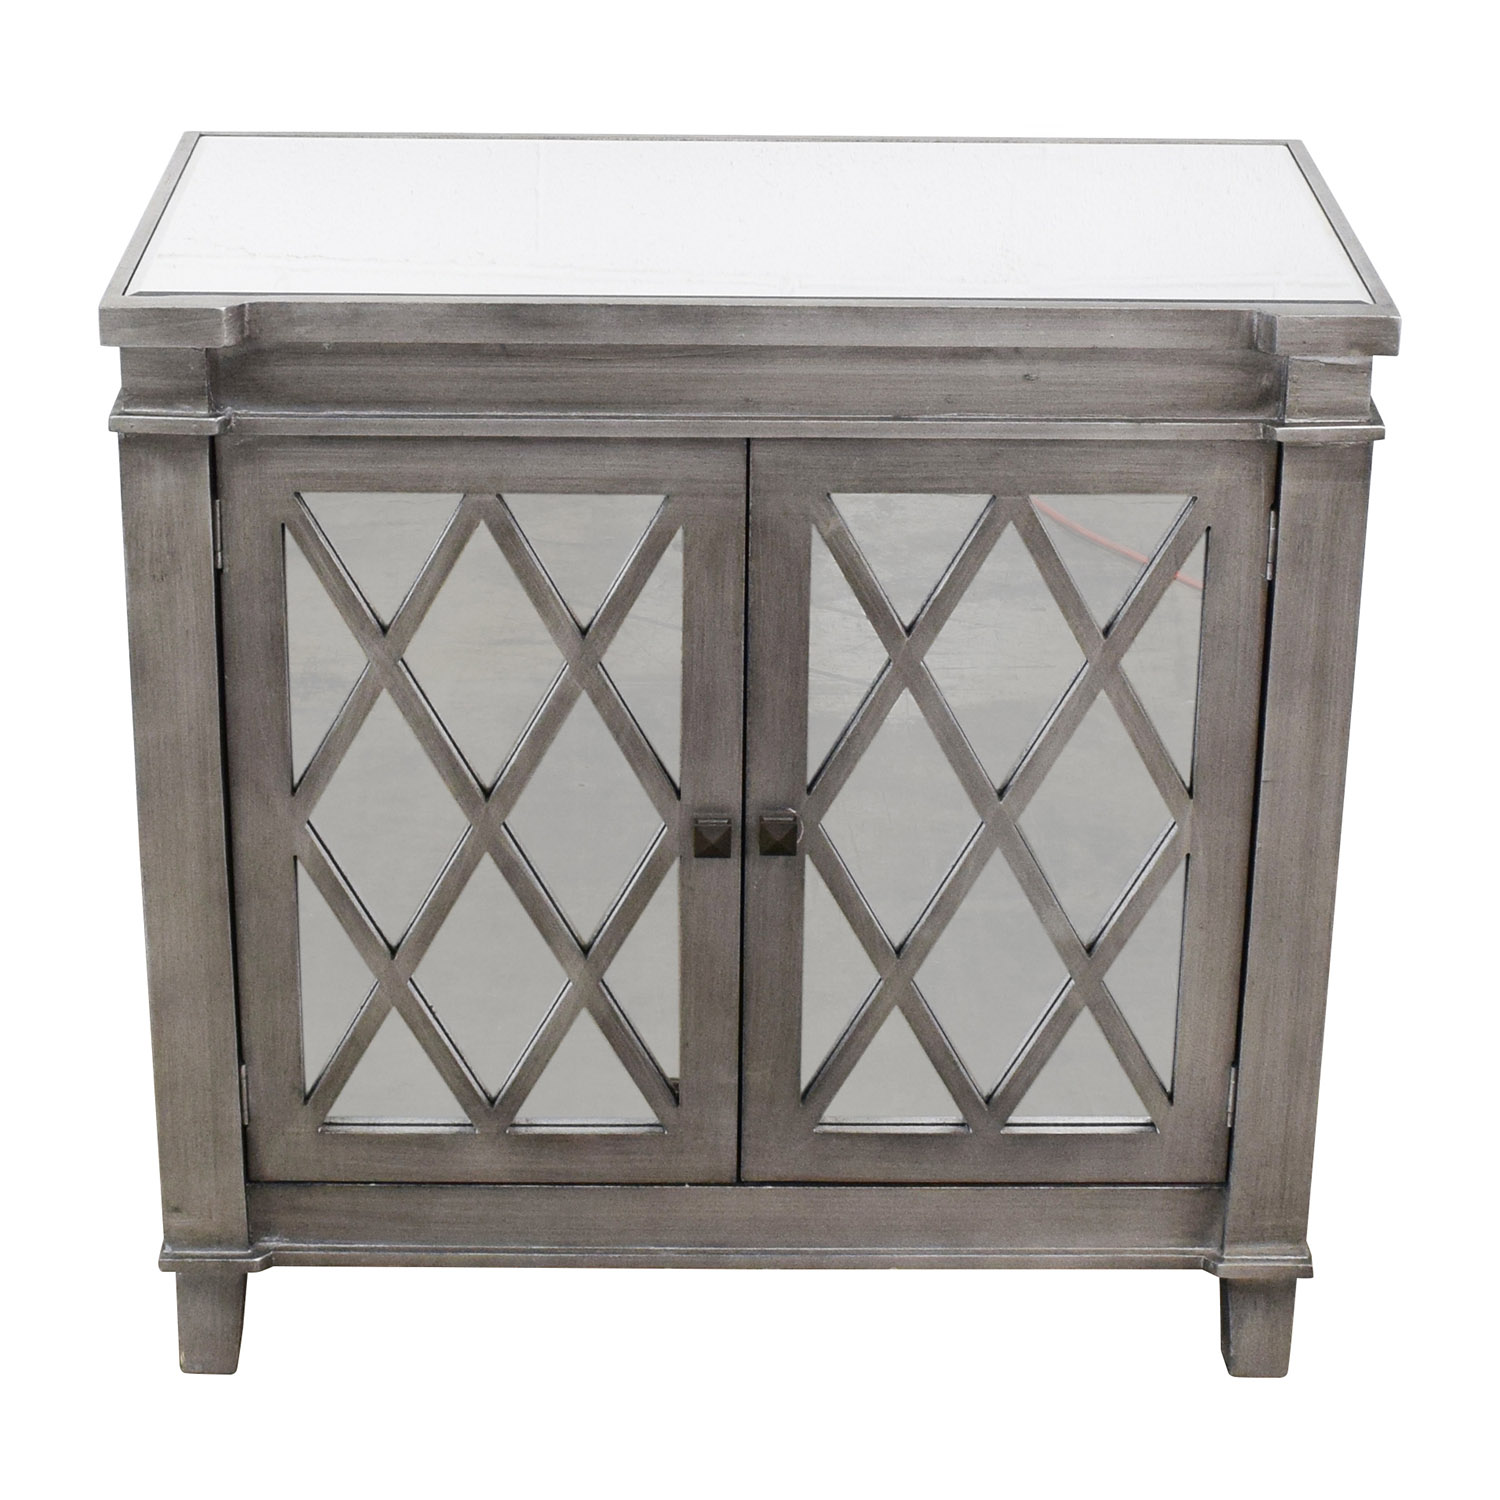 Mirrored Chest with Silver Trim nj